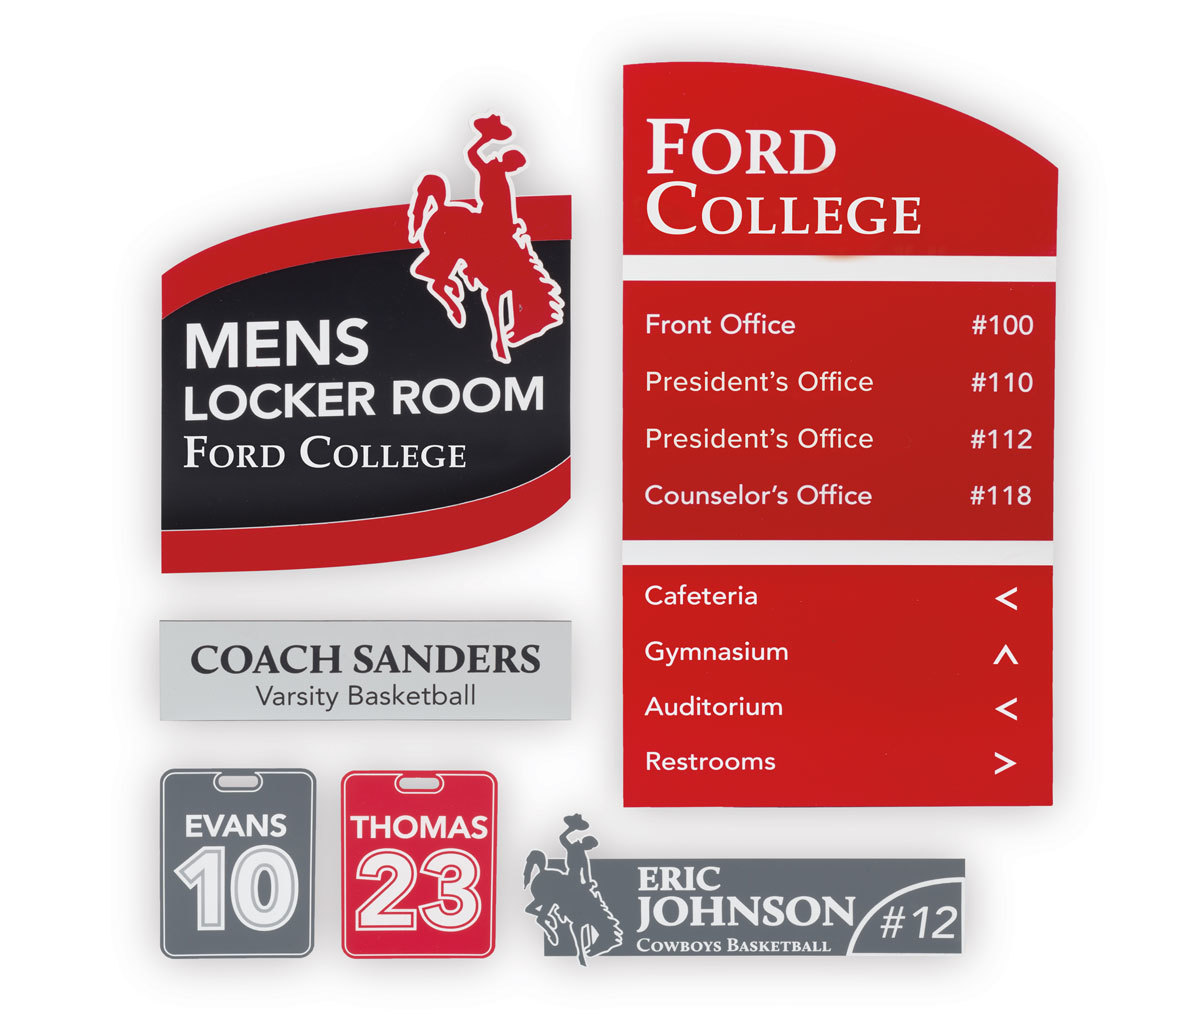 University_Color Match_Ford-College